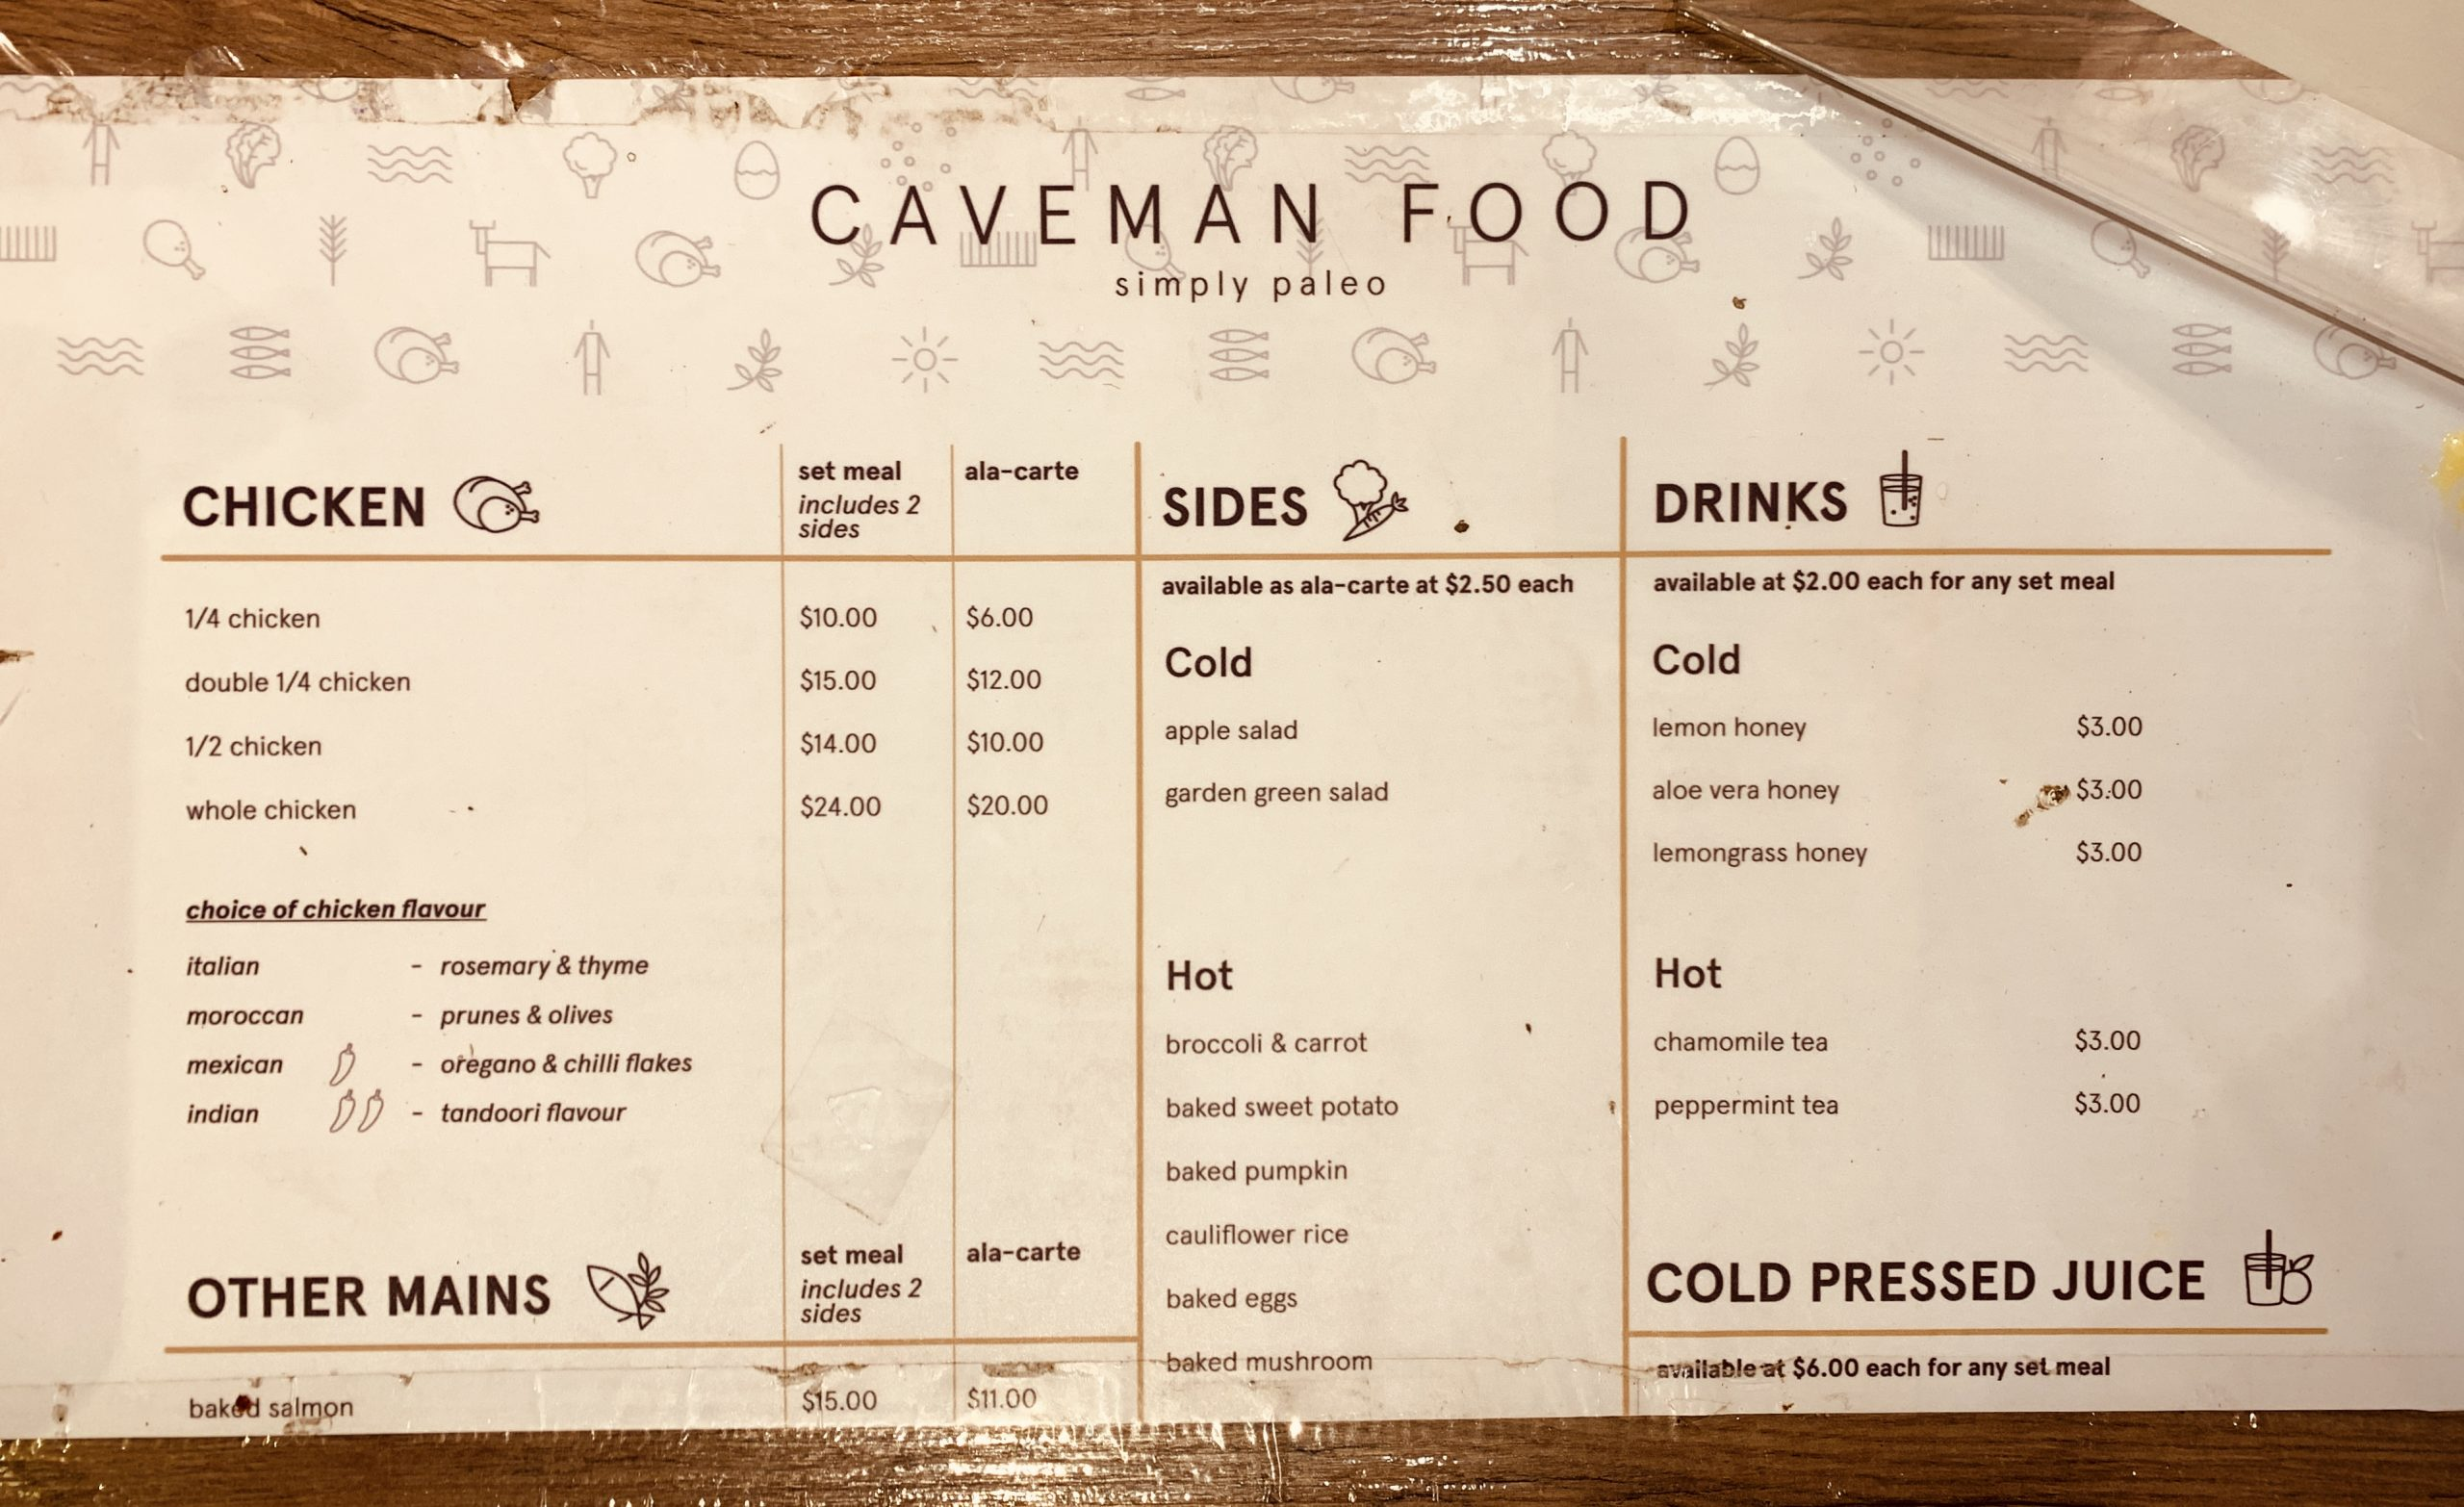 Caveman Food - Menu